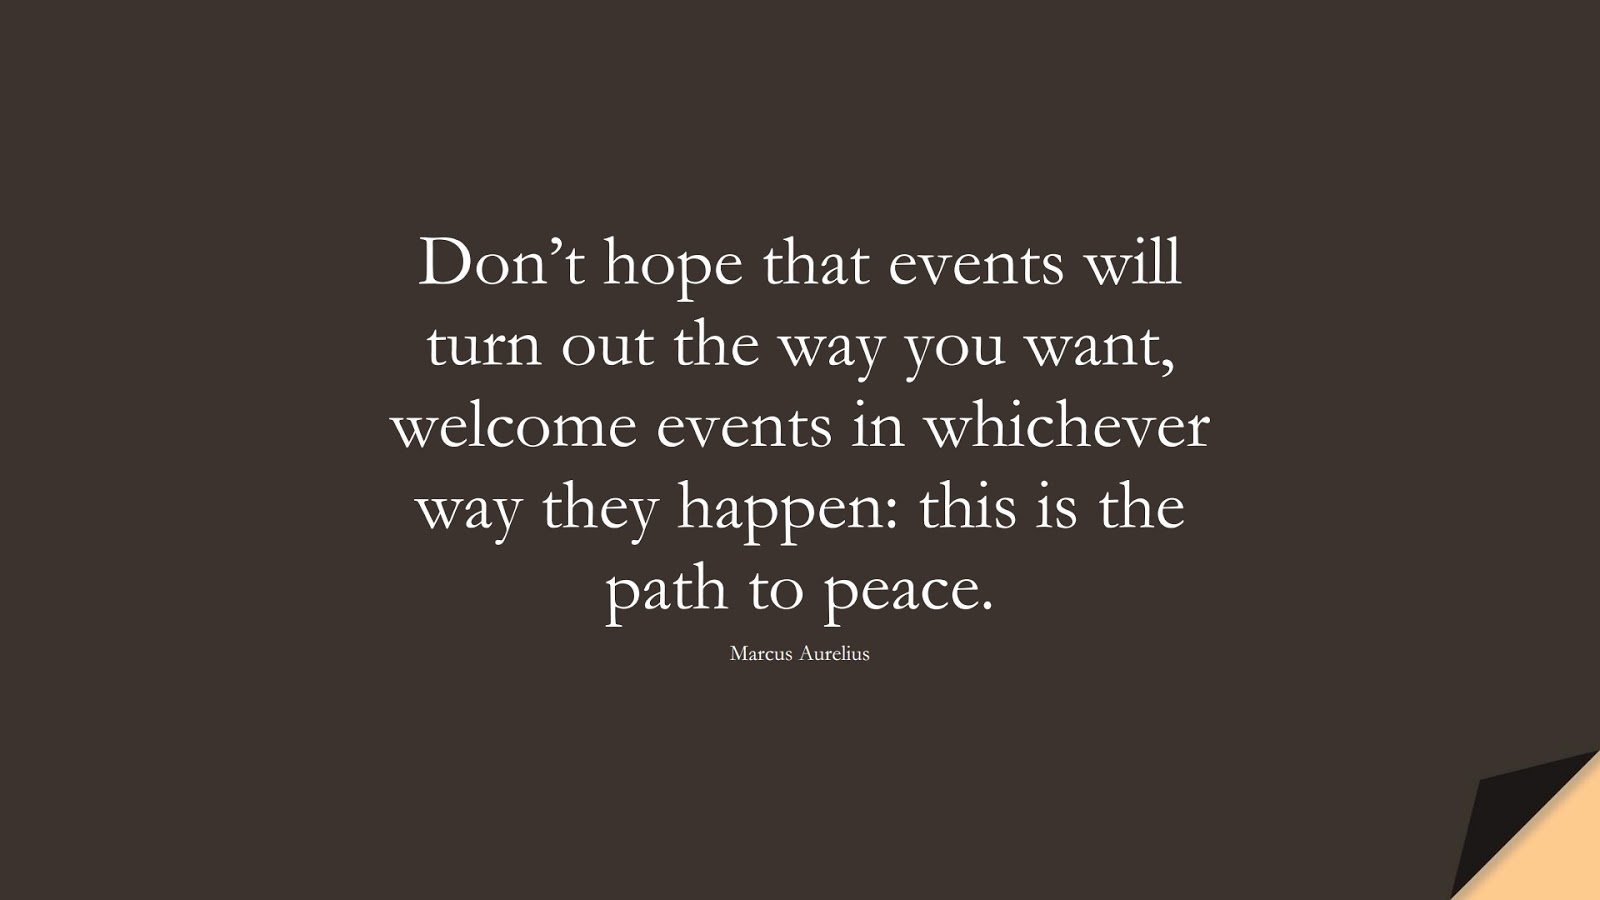 Don't hope that events will turn out the way you want, welcome events in whichever way they happen: this is the path to peace. (Marcus Aurelius);  #MarcusAureliusQuotes